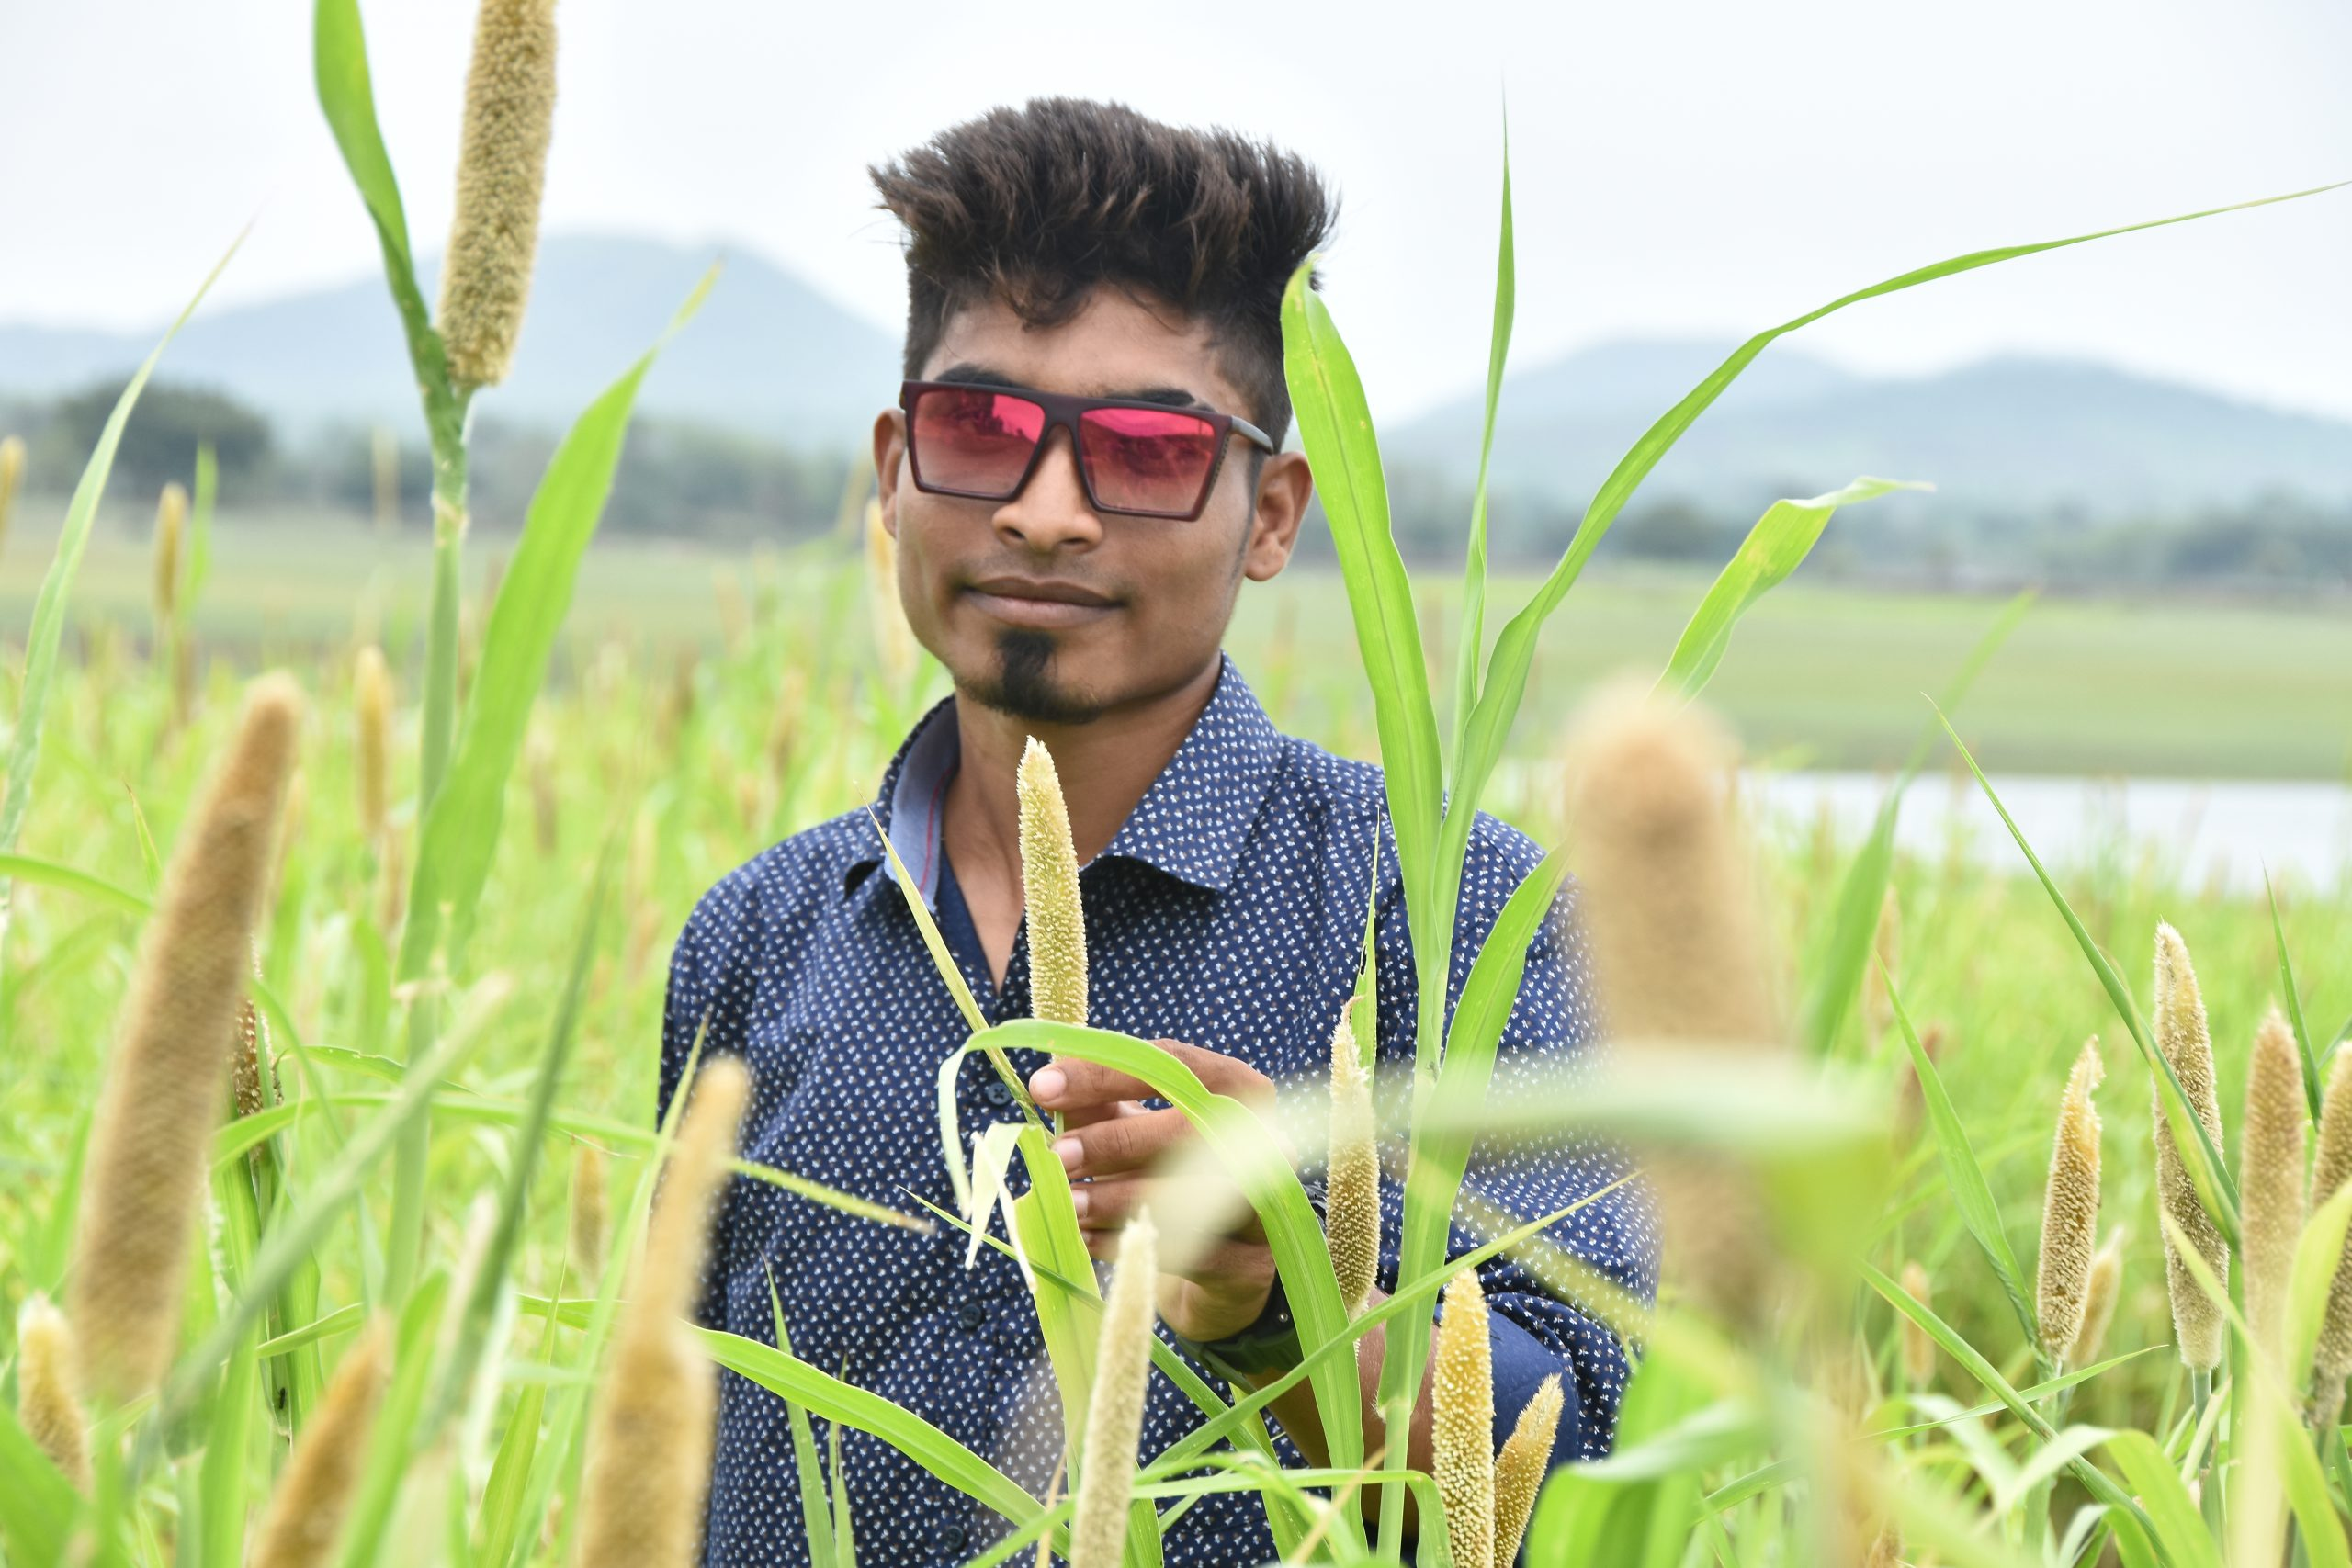 Boy in the farm and posing with sunglasses